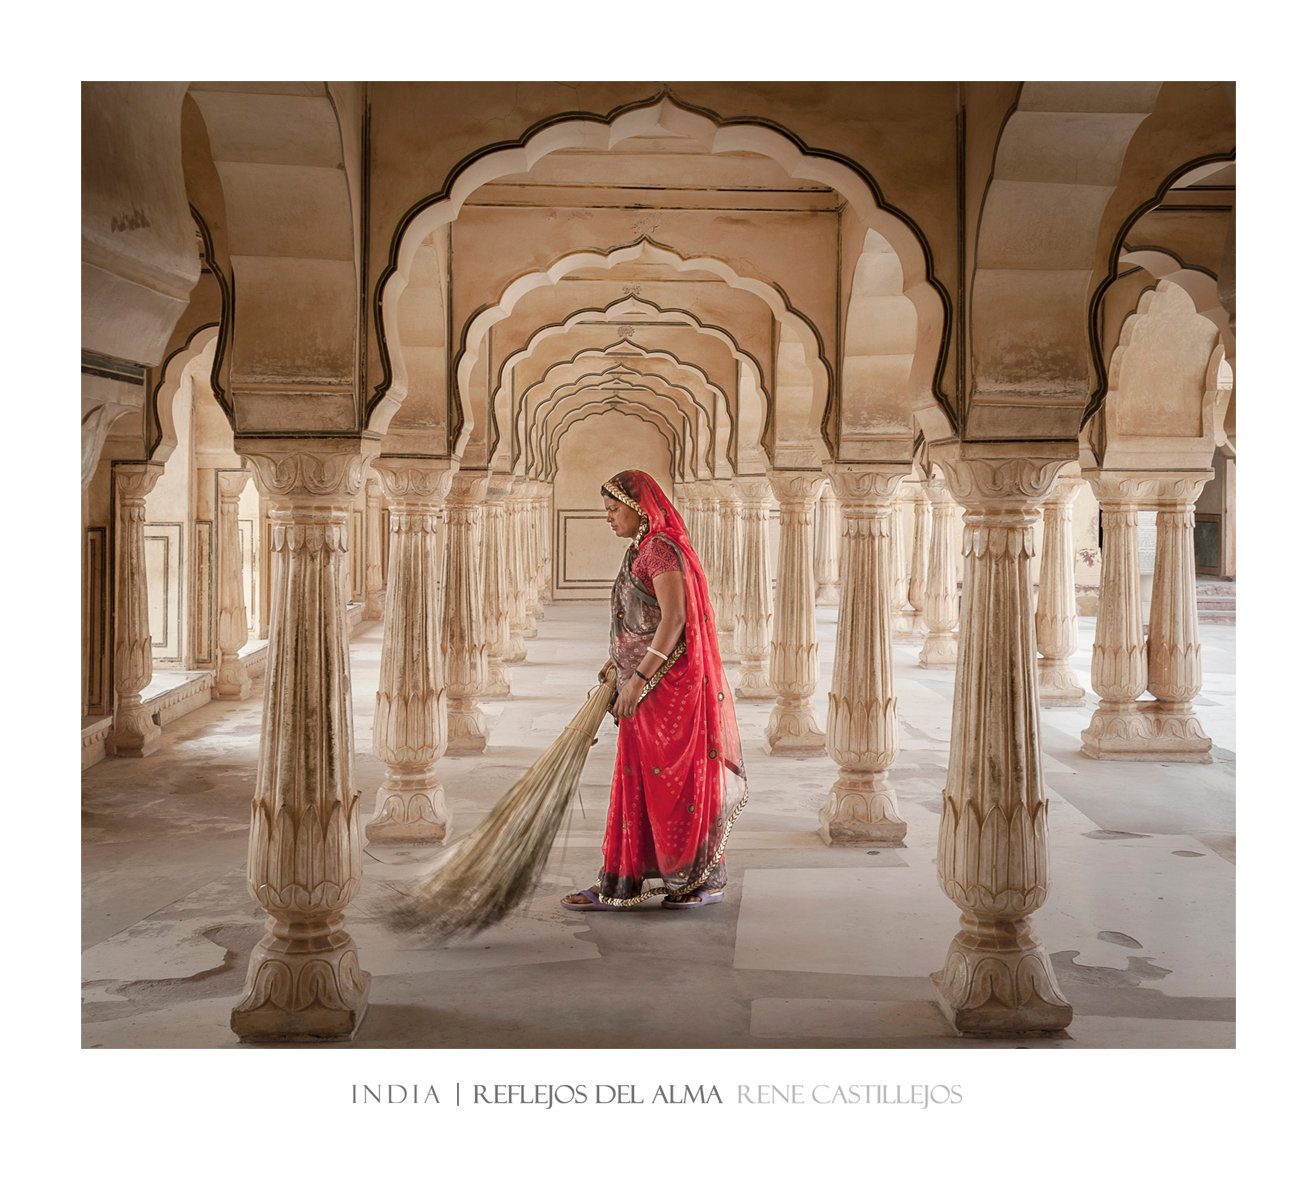 WOMAN OF RED IN AMBER FORT